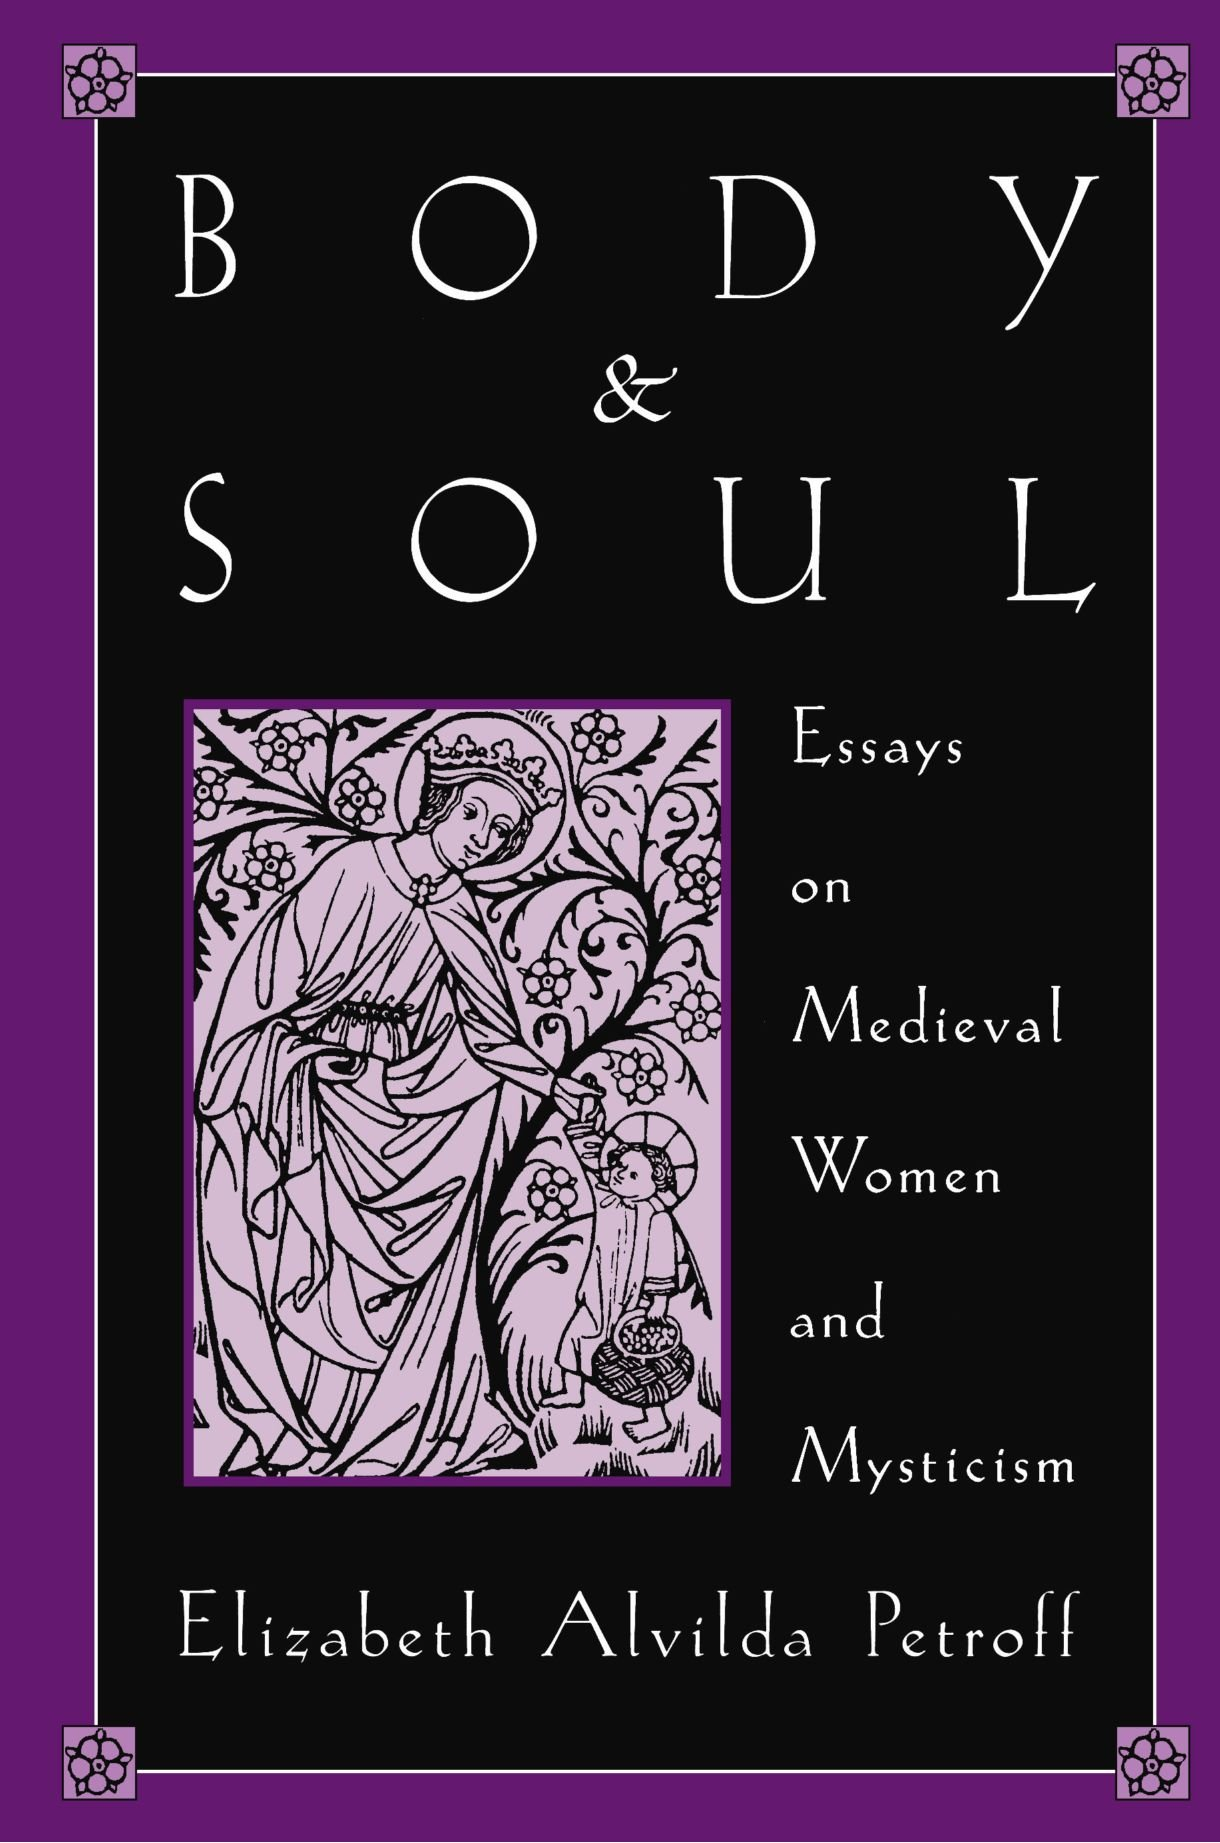 body image essays body and soul essays on medieval women and mysticism elizabeth amazon com body and soul essays